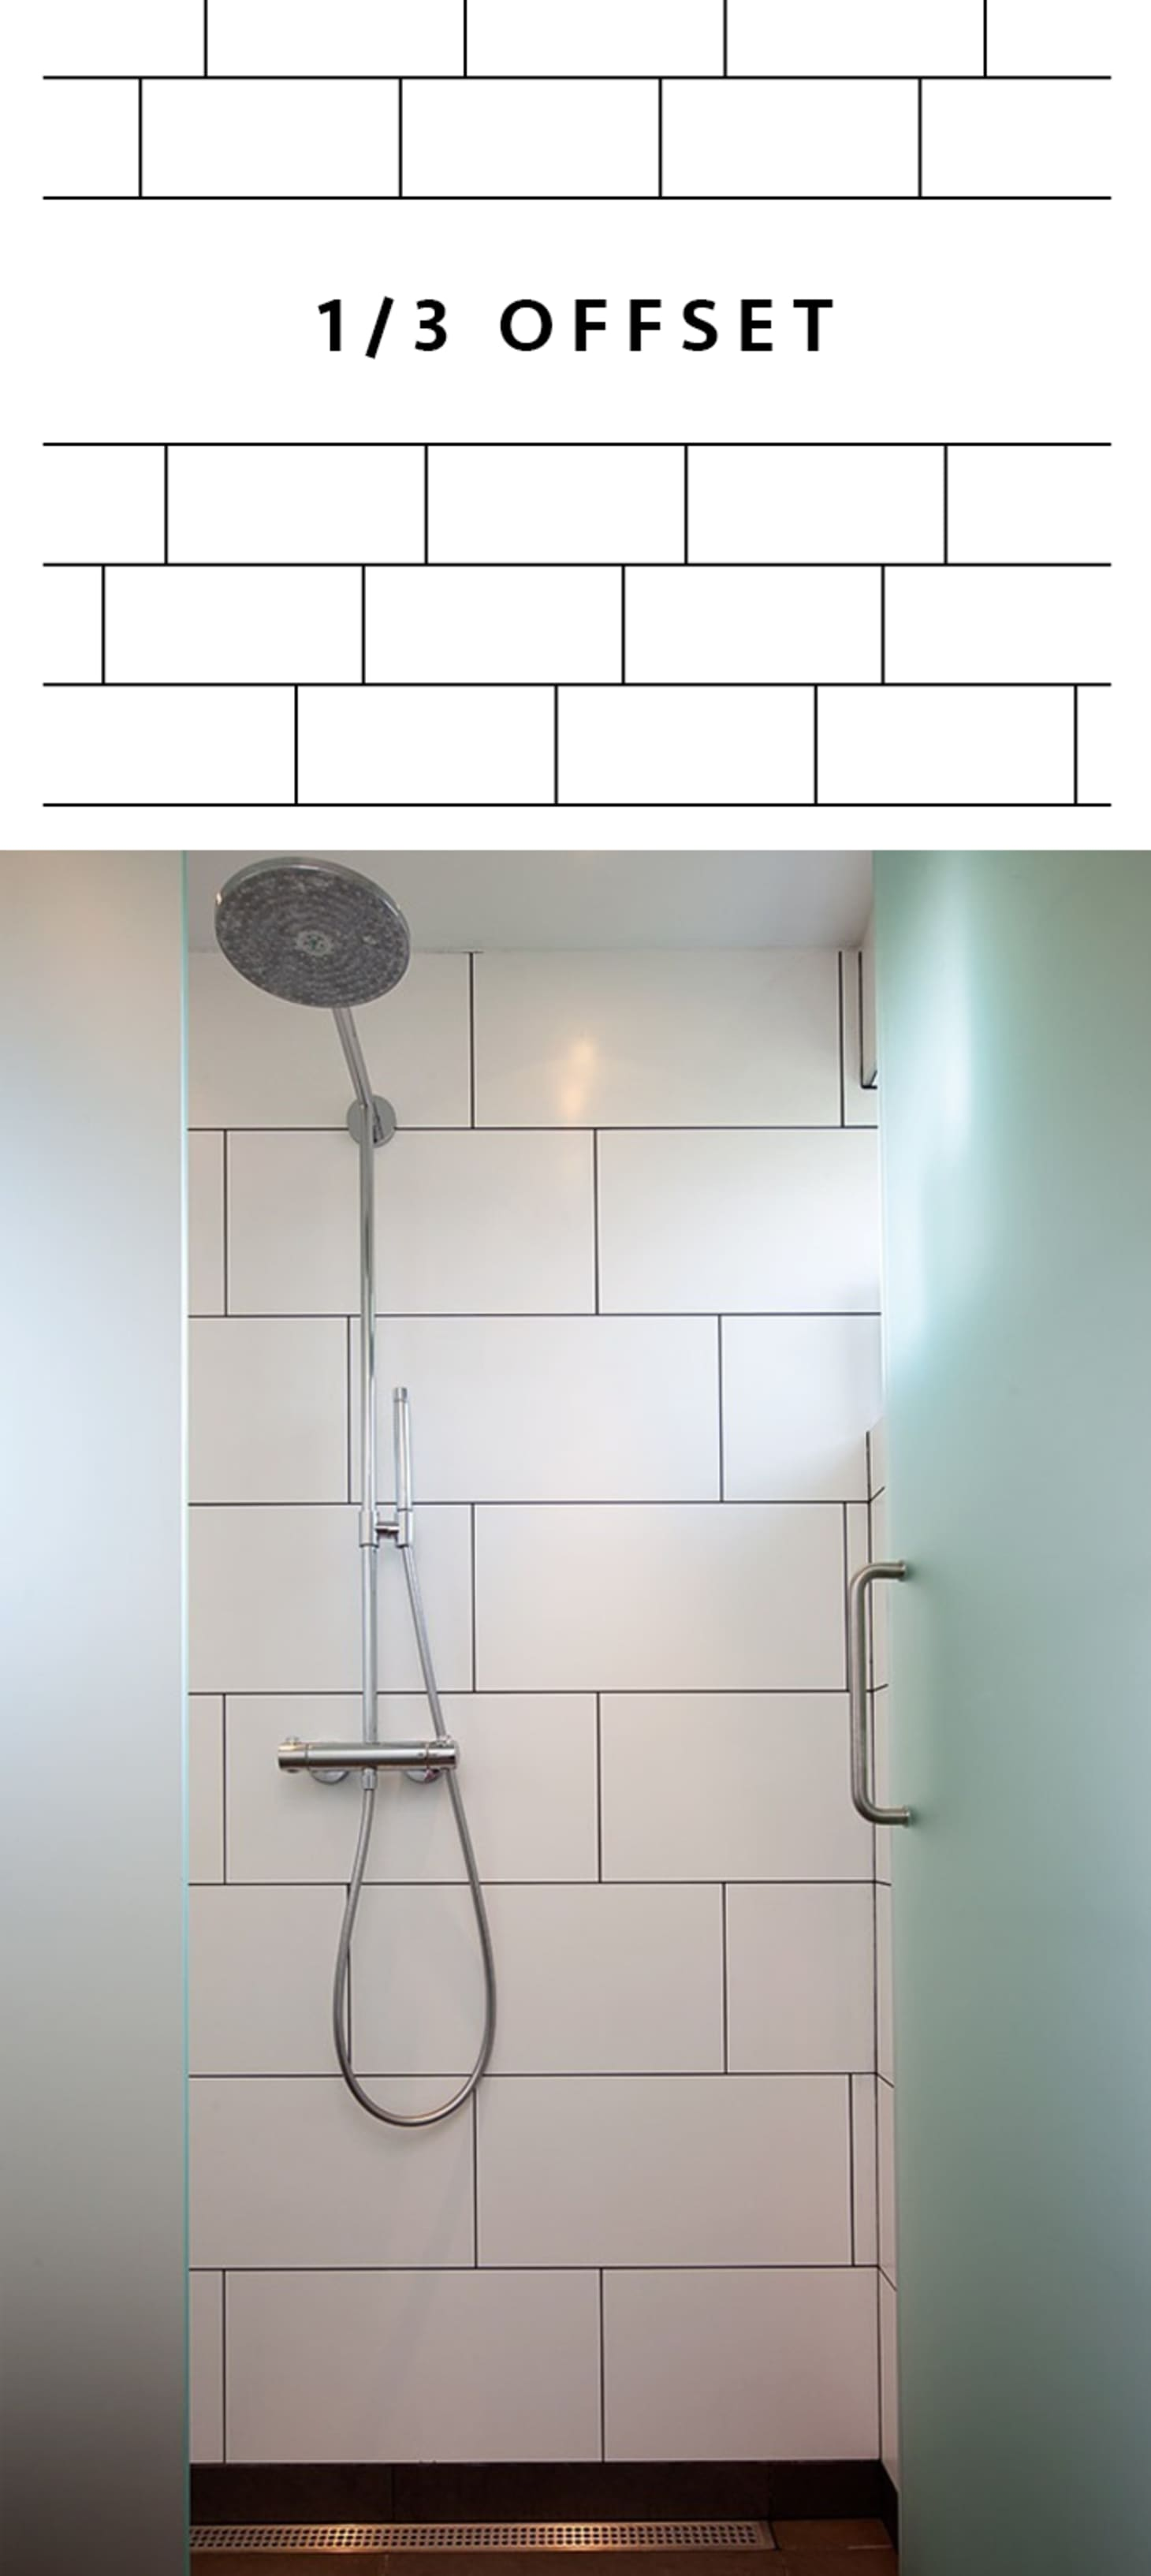 Tile Layouts: A Visual Guide for Picking a Pattern